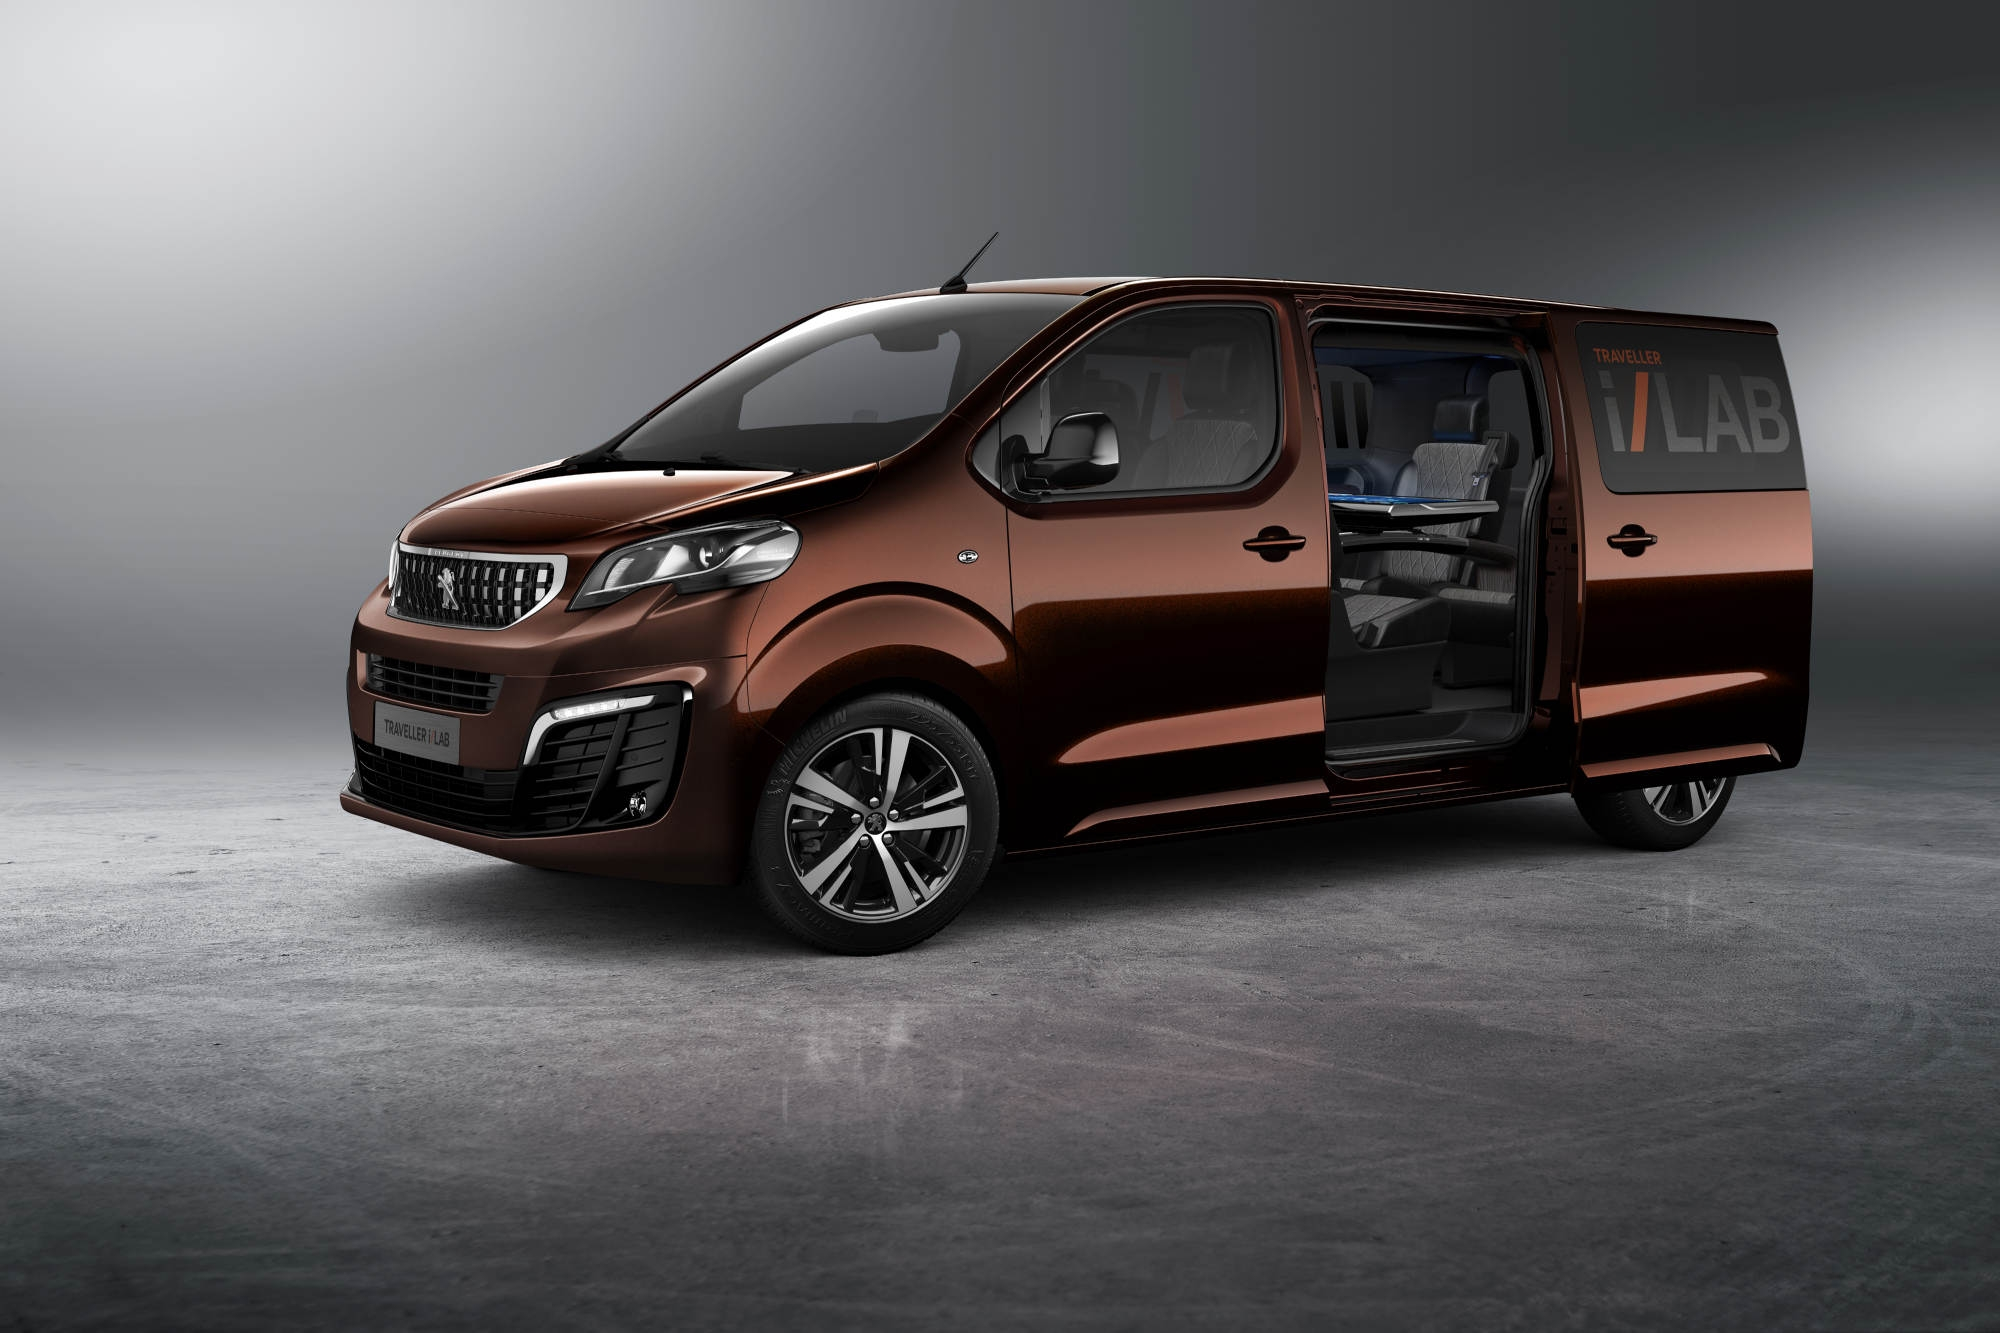 salon de gen ve 2016 peugeot traveller i lab concept navette vip. Black Bedroom Furniture Sets. Home Design Ideas